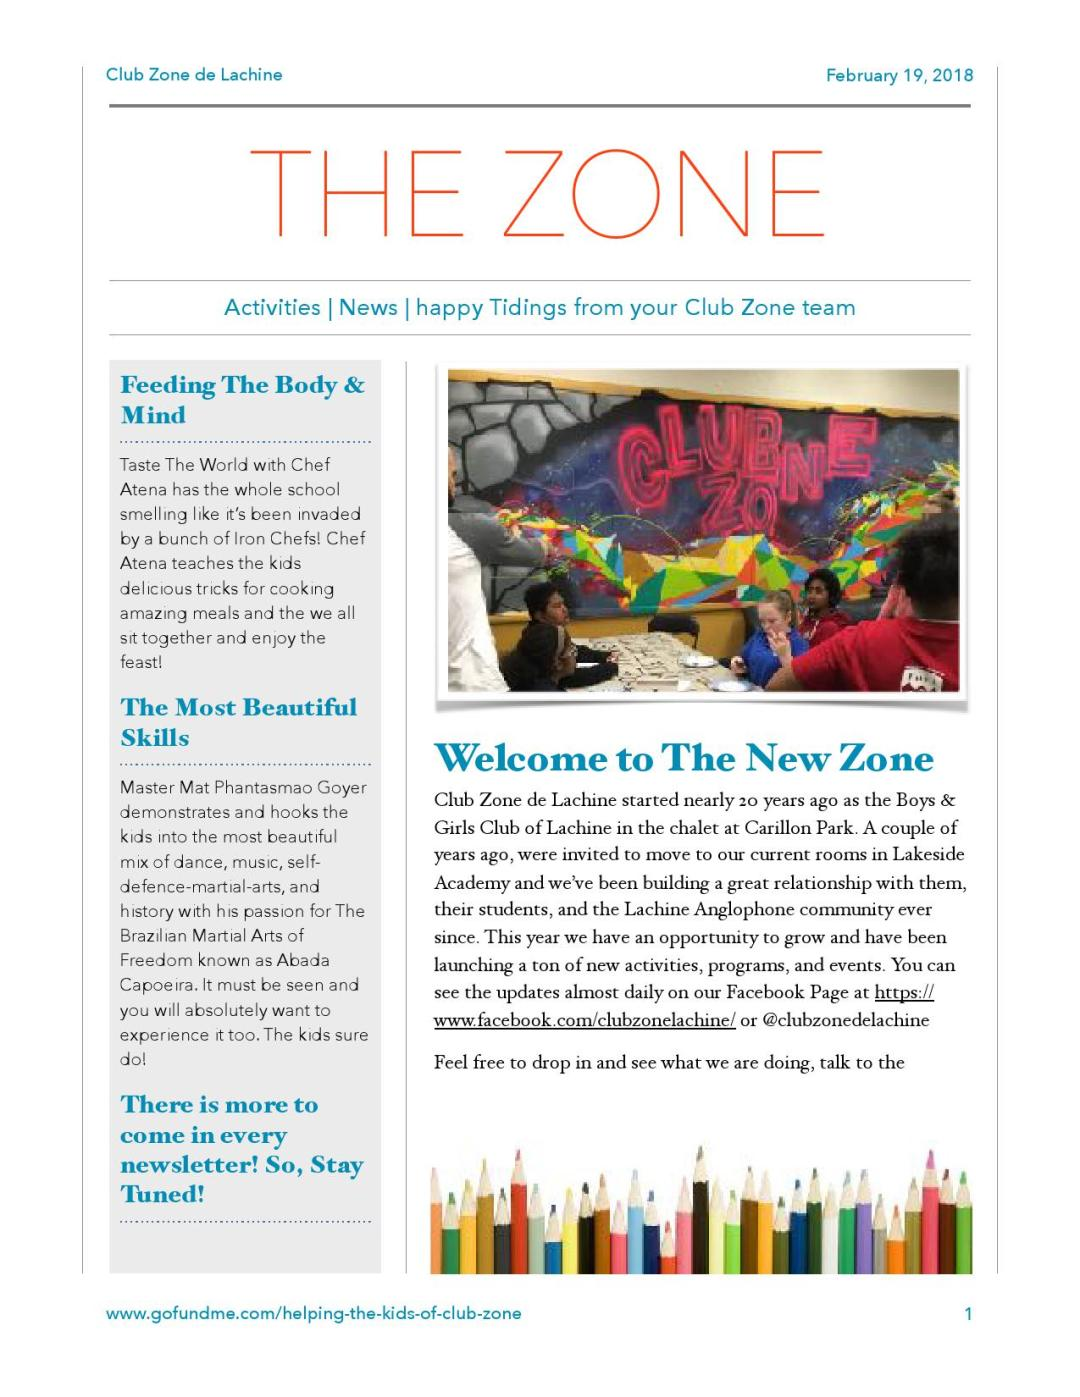 Club Zone Newsletter 2018-02-19_000001